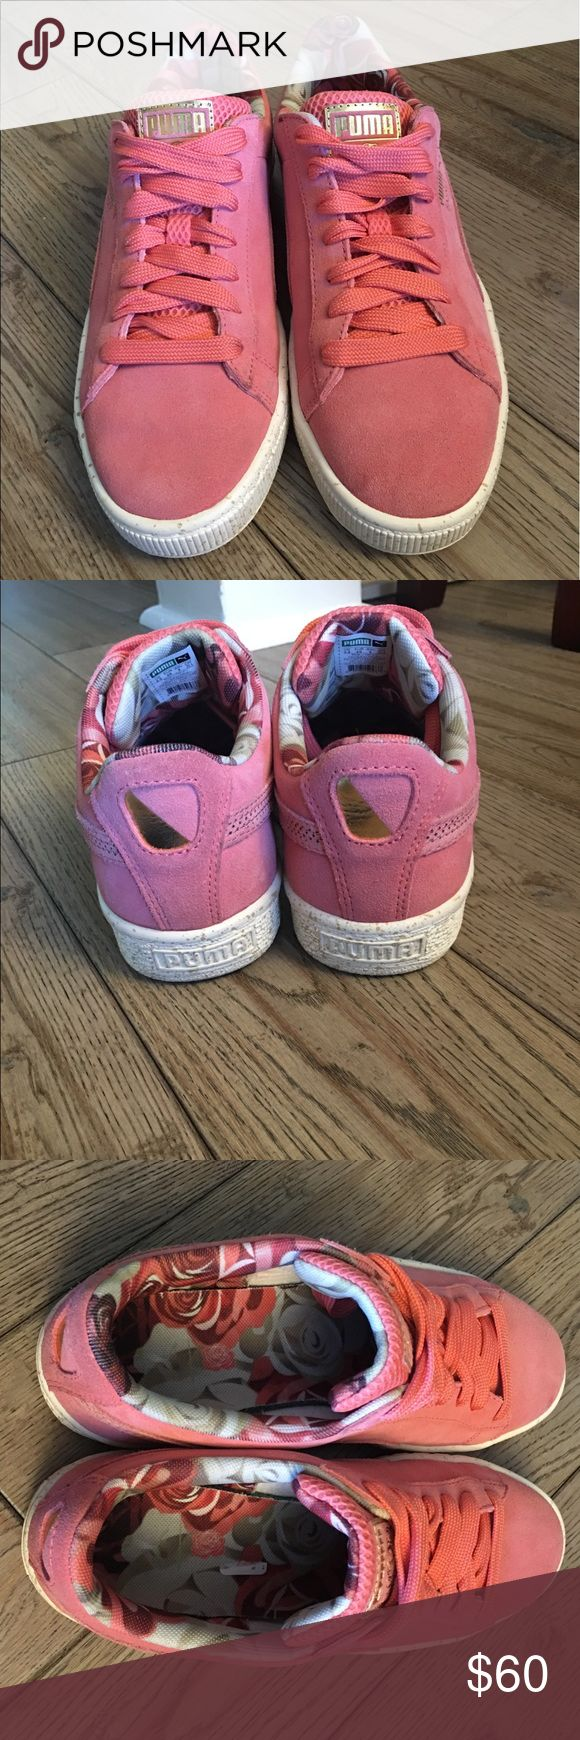 Pink suede Pumas Super cute pink suede puma sneakers in PERFECT condition. Worn maybe one time for an actual hour.. no scuffs! Cute floral interior and fun color for the summer! Speckled soles that go around the border of the shoe. Subtle gold detail throughout. Comes without box but in flawless condition. True to size Puma Shoes Sneakers